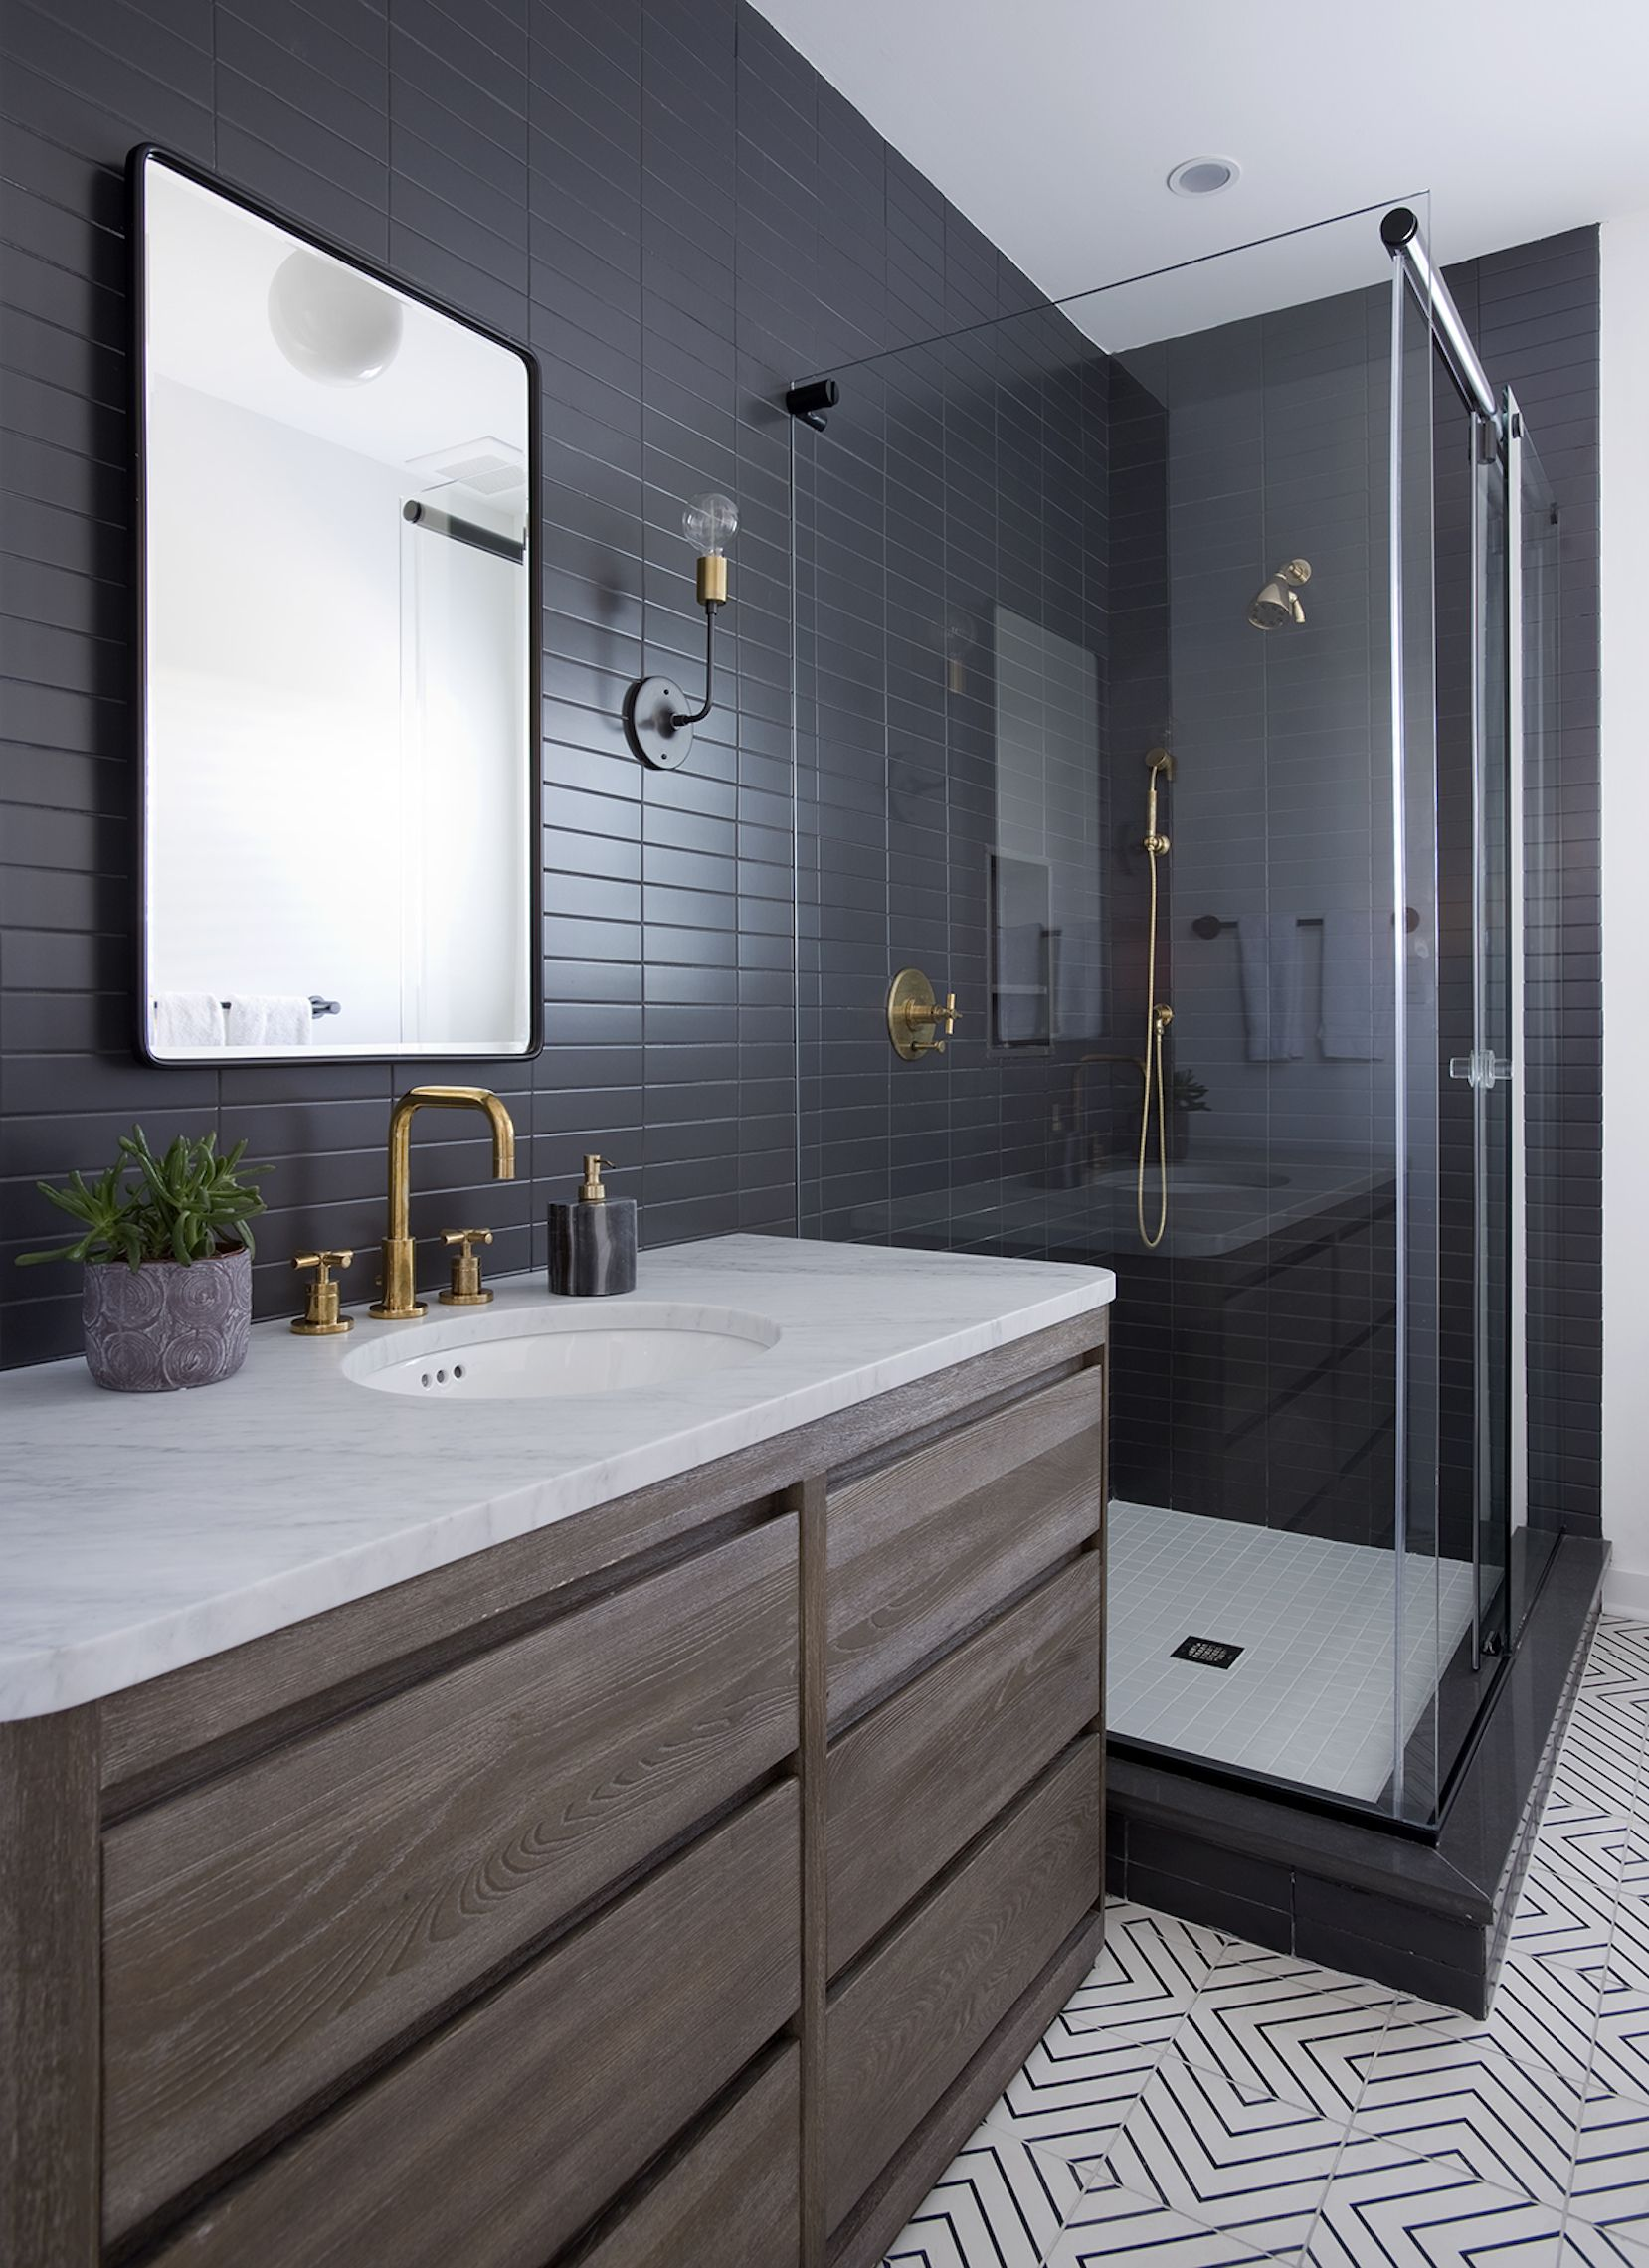 Sleek Modern Dark Bathroom With Glossy Tiled Walls Threshold Interiors Nyc Big Bathrooms Modern Bathroom Design Modern Small Bathrooms